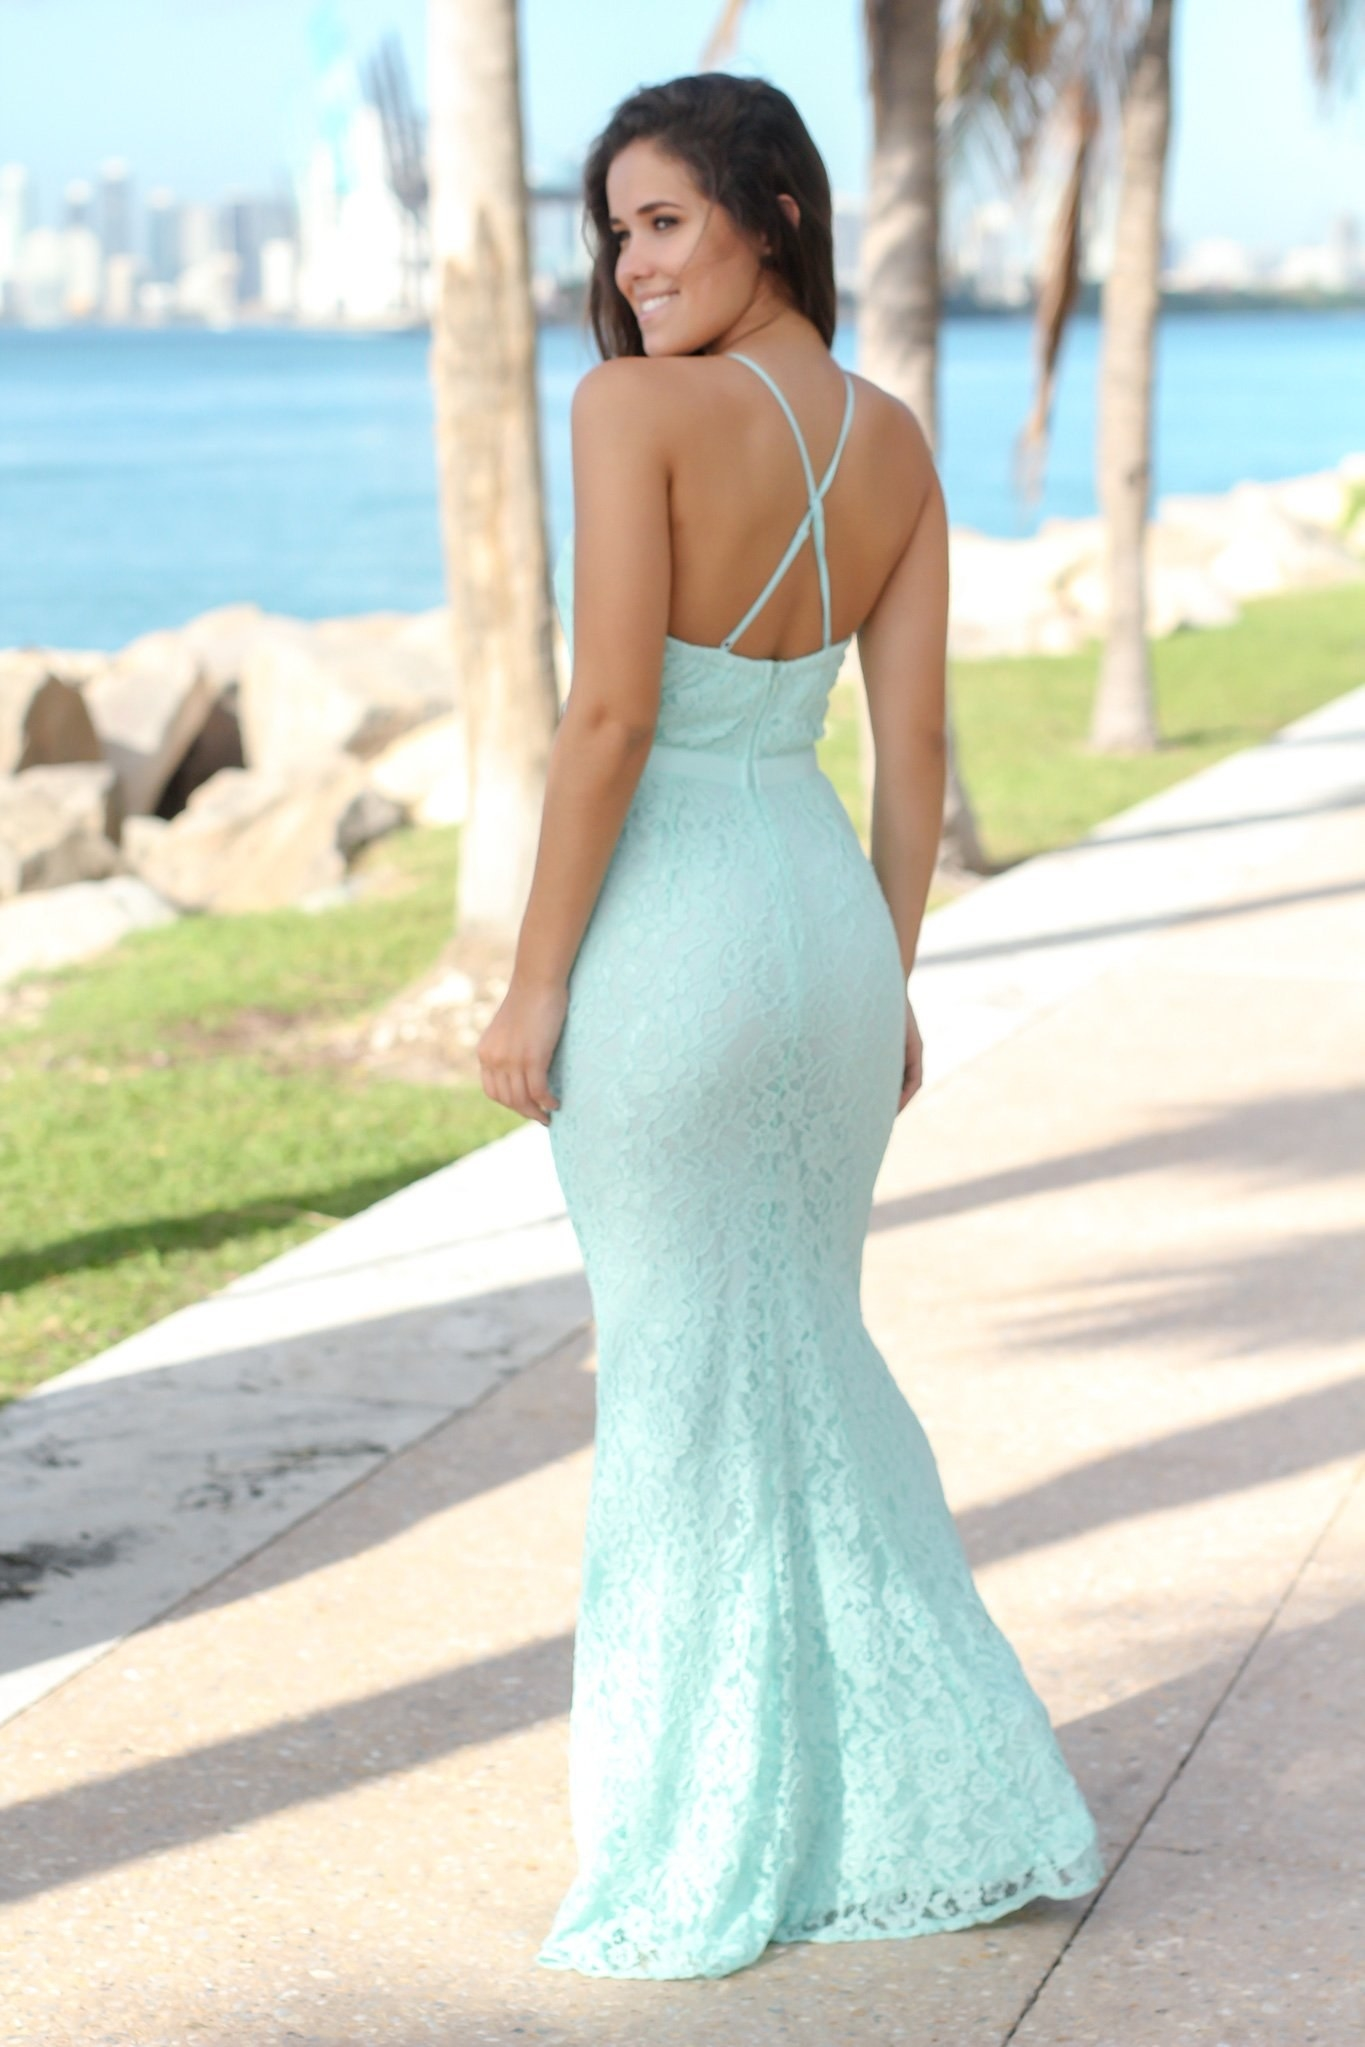 Attractive Places To Get Cheap Prom Dresses Online Saved By Dress Customer Service Saved By Dress Store Saved By Dress A Dress Seller That Will Truly Save You Not Sure Where To wedding dress Saved By The Dress